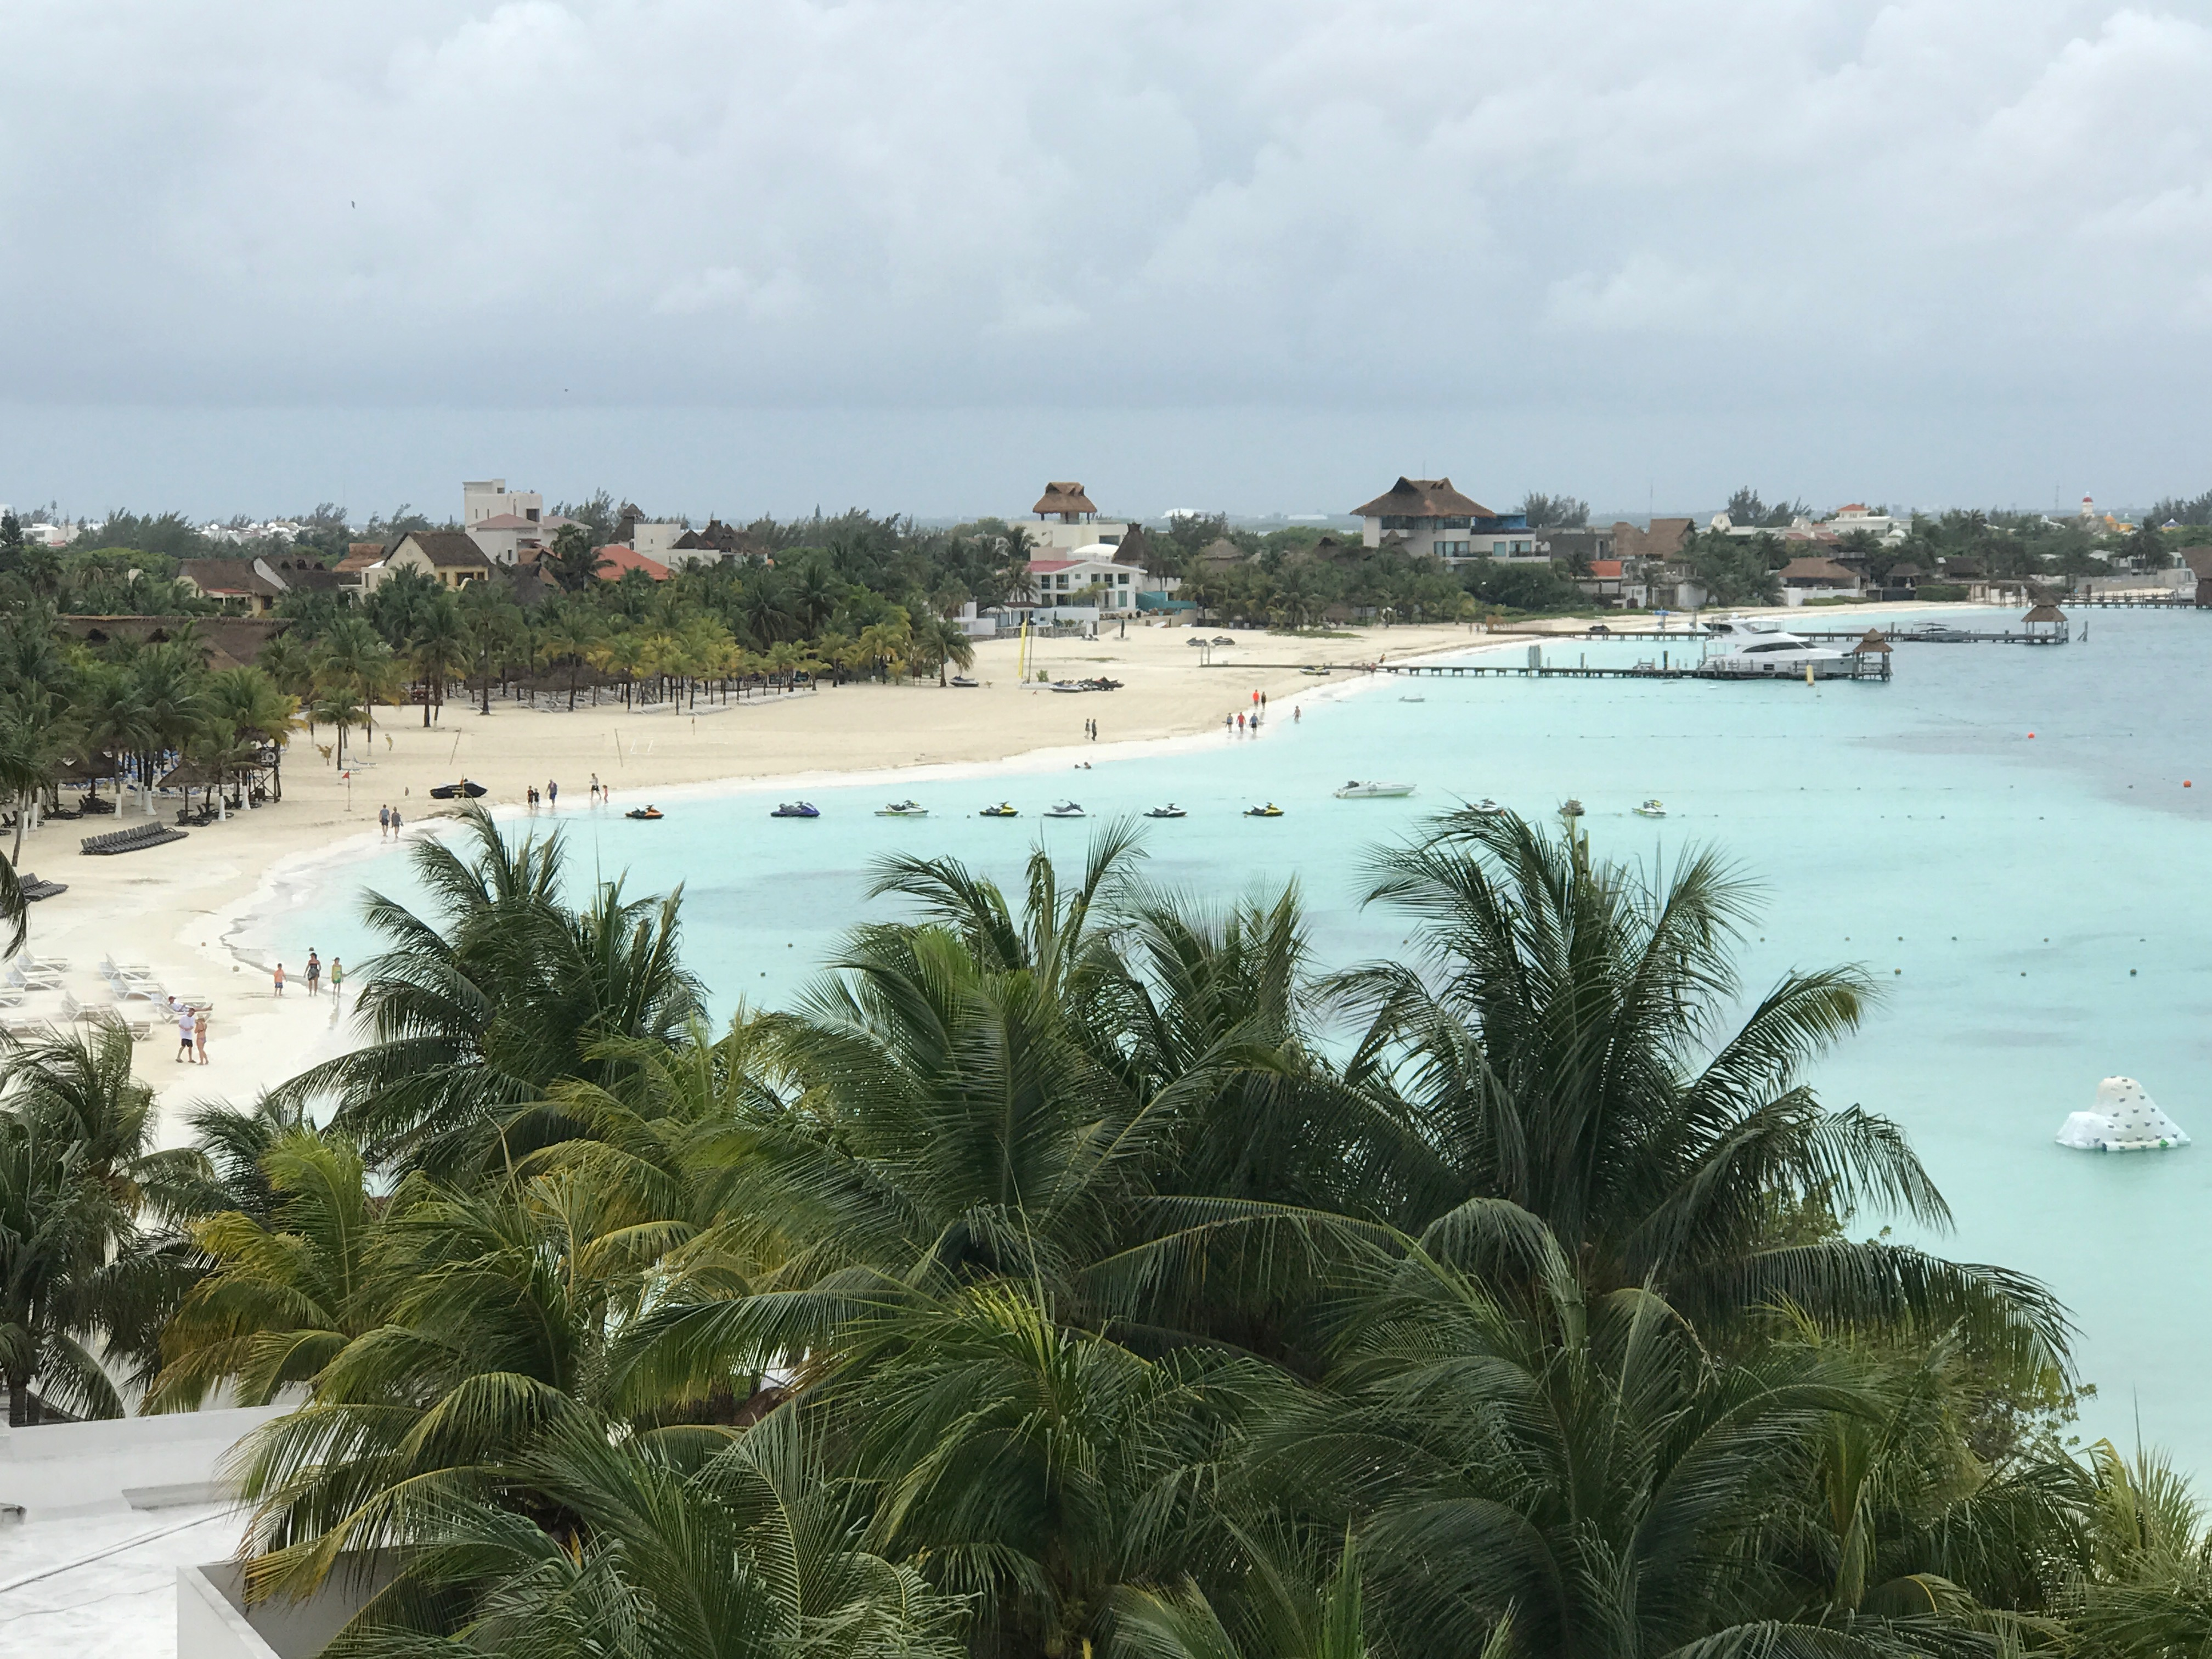 The End of Our Mexico Adventure: Cancun